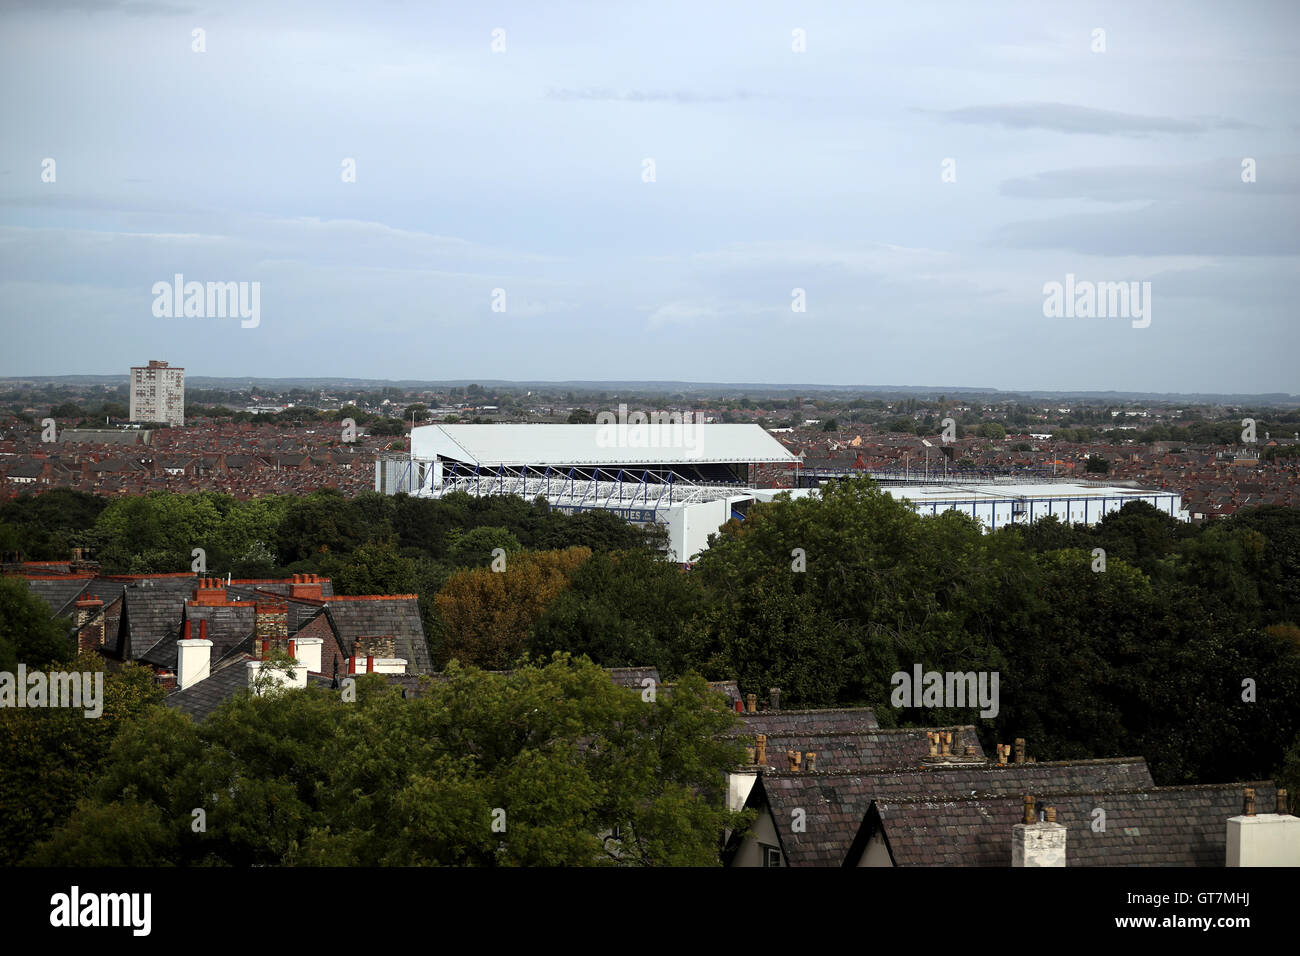 Goodison Park Home Of Everton FC Can Be Seen From Anfield Stadium Liverpool Following The Opening New Main Stand